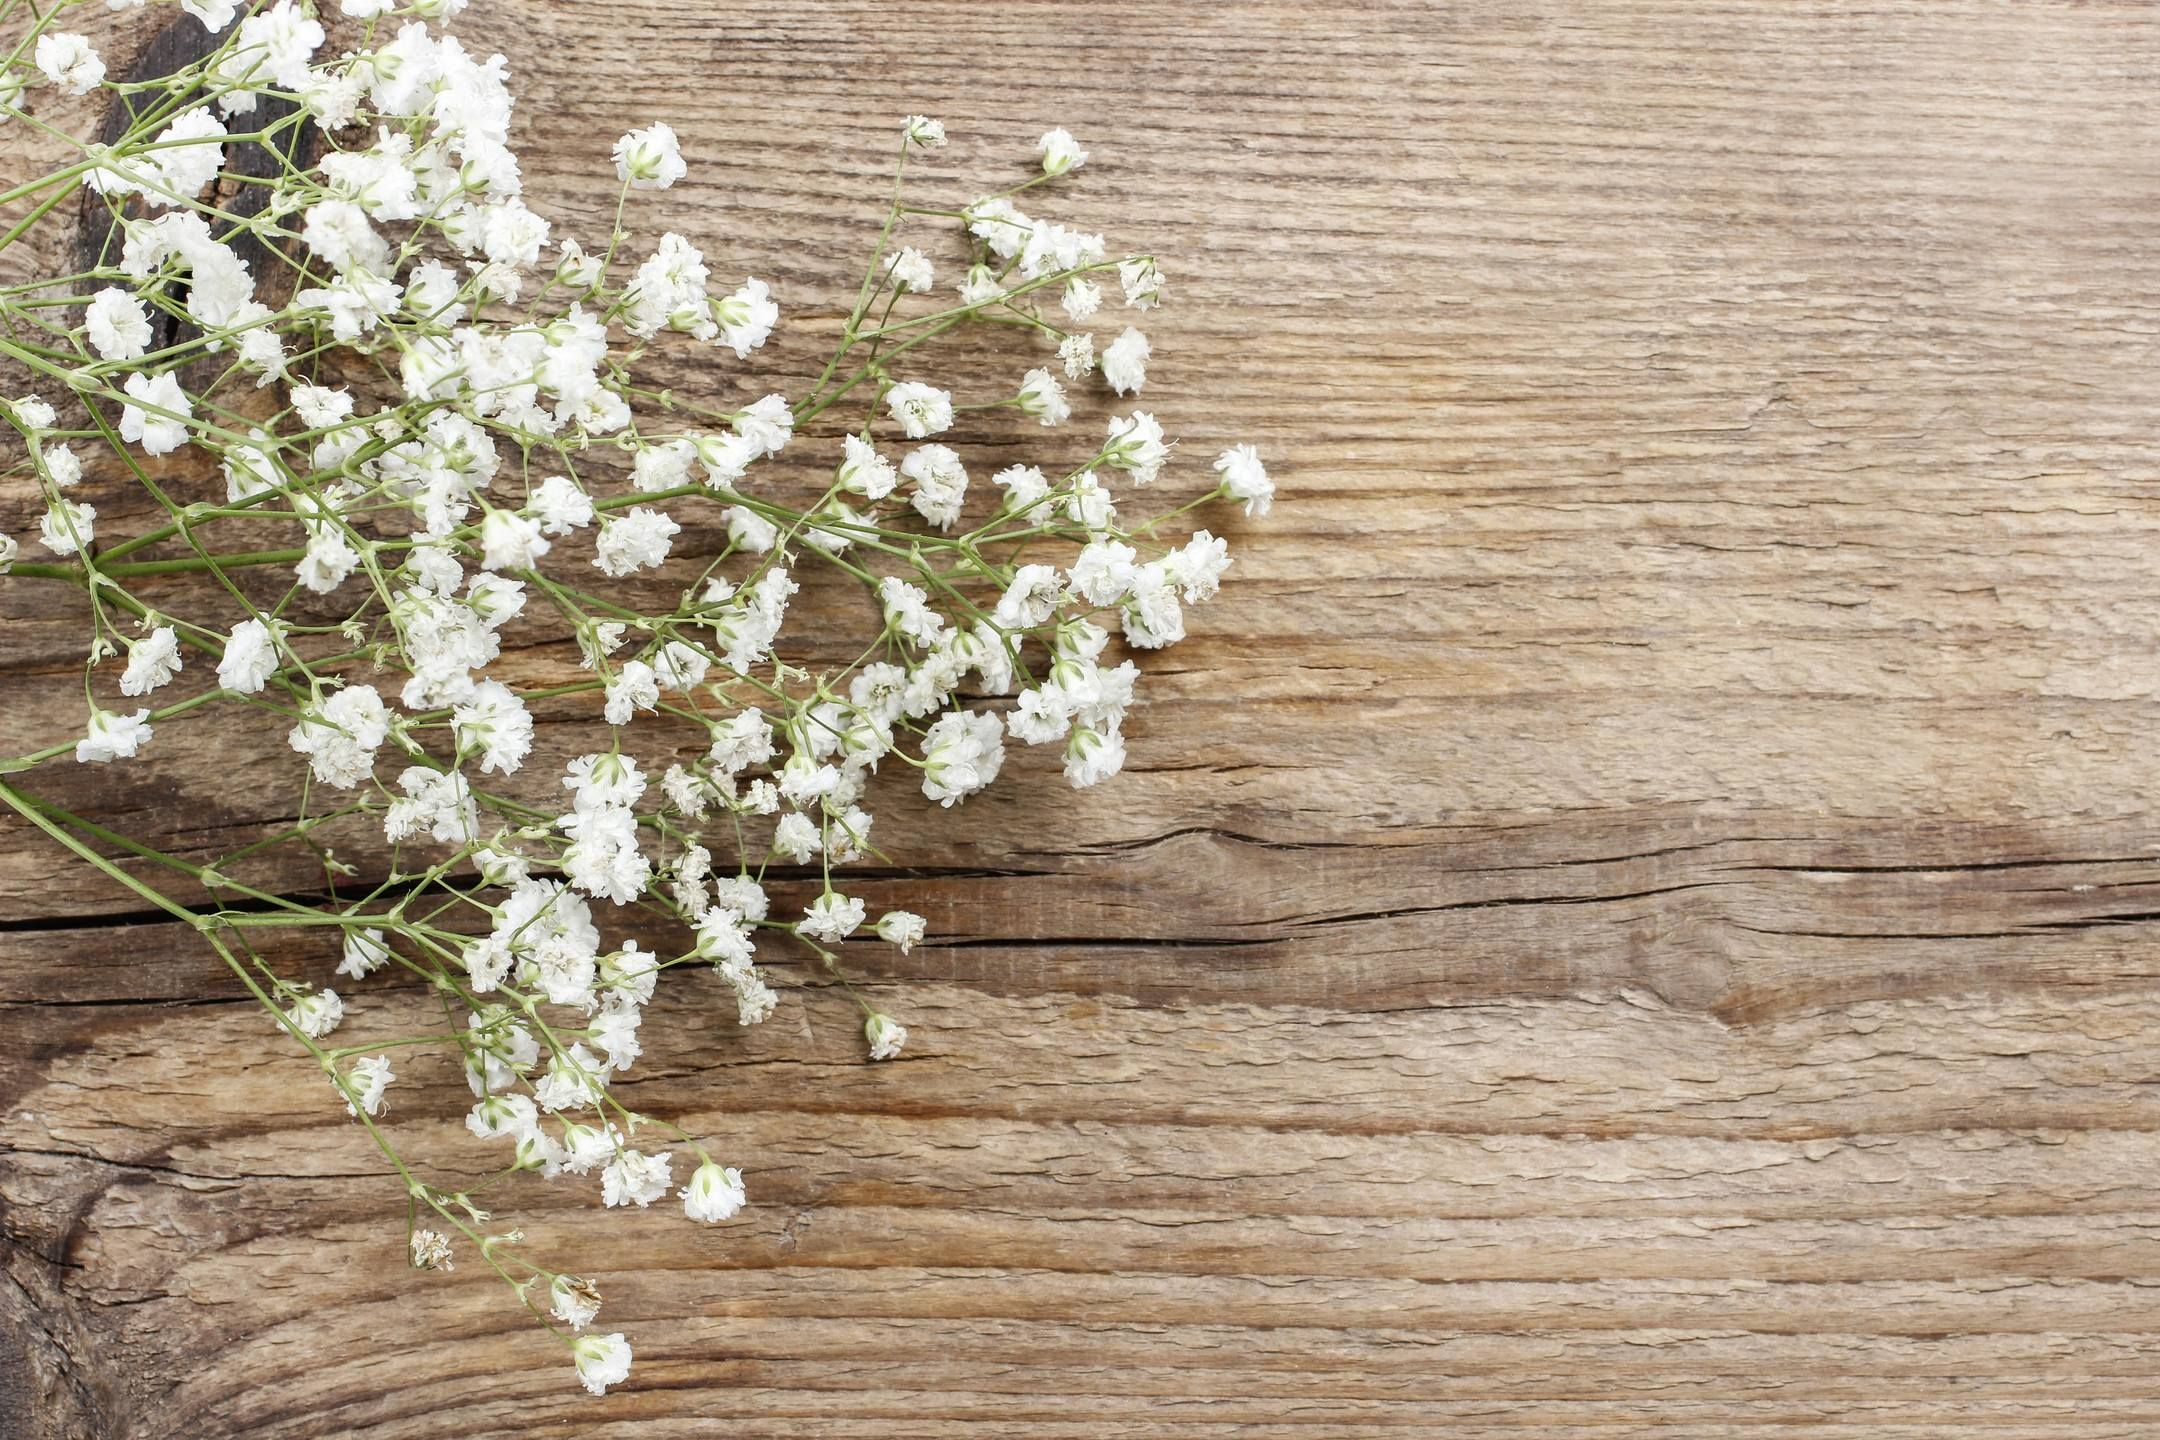 Rustic Decoration Delicate Baby S Breath Flowers On A Wood Background In 2020 Babys Breath Flowers Babys Breath Flower Wallpaper